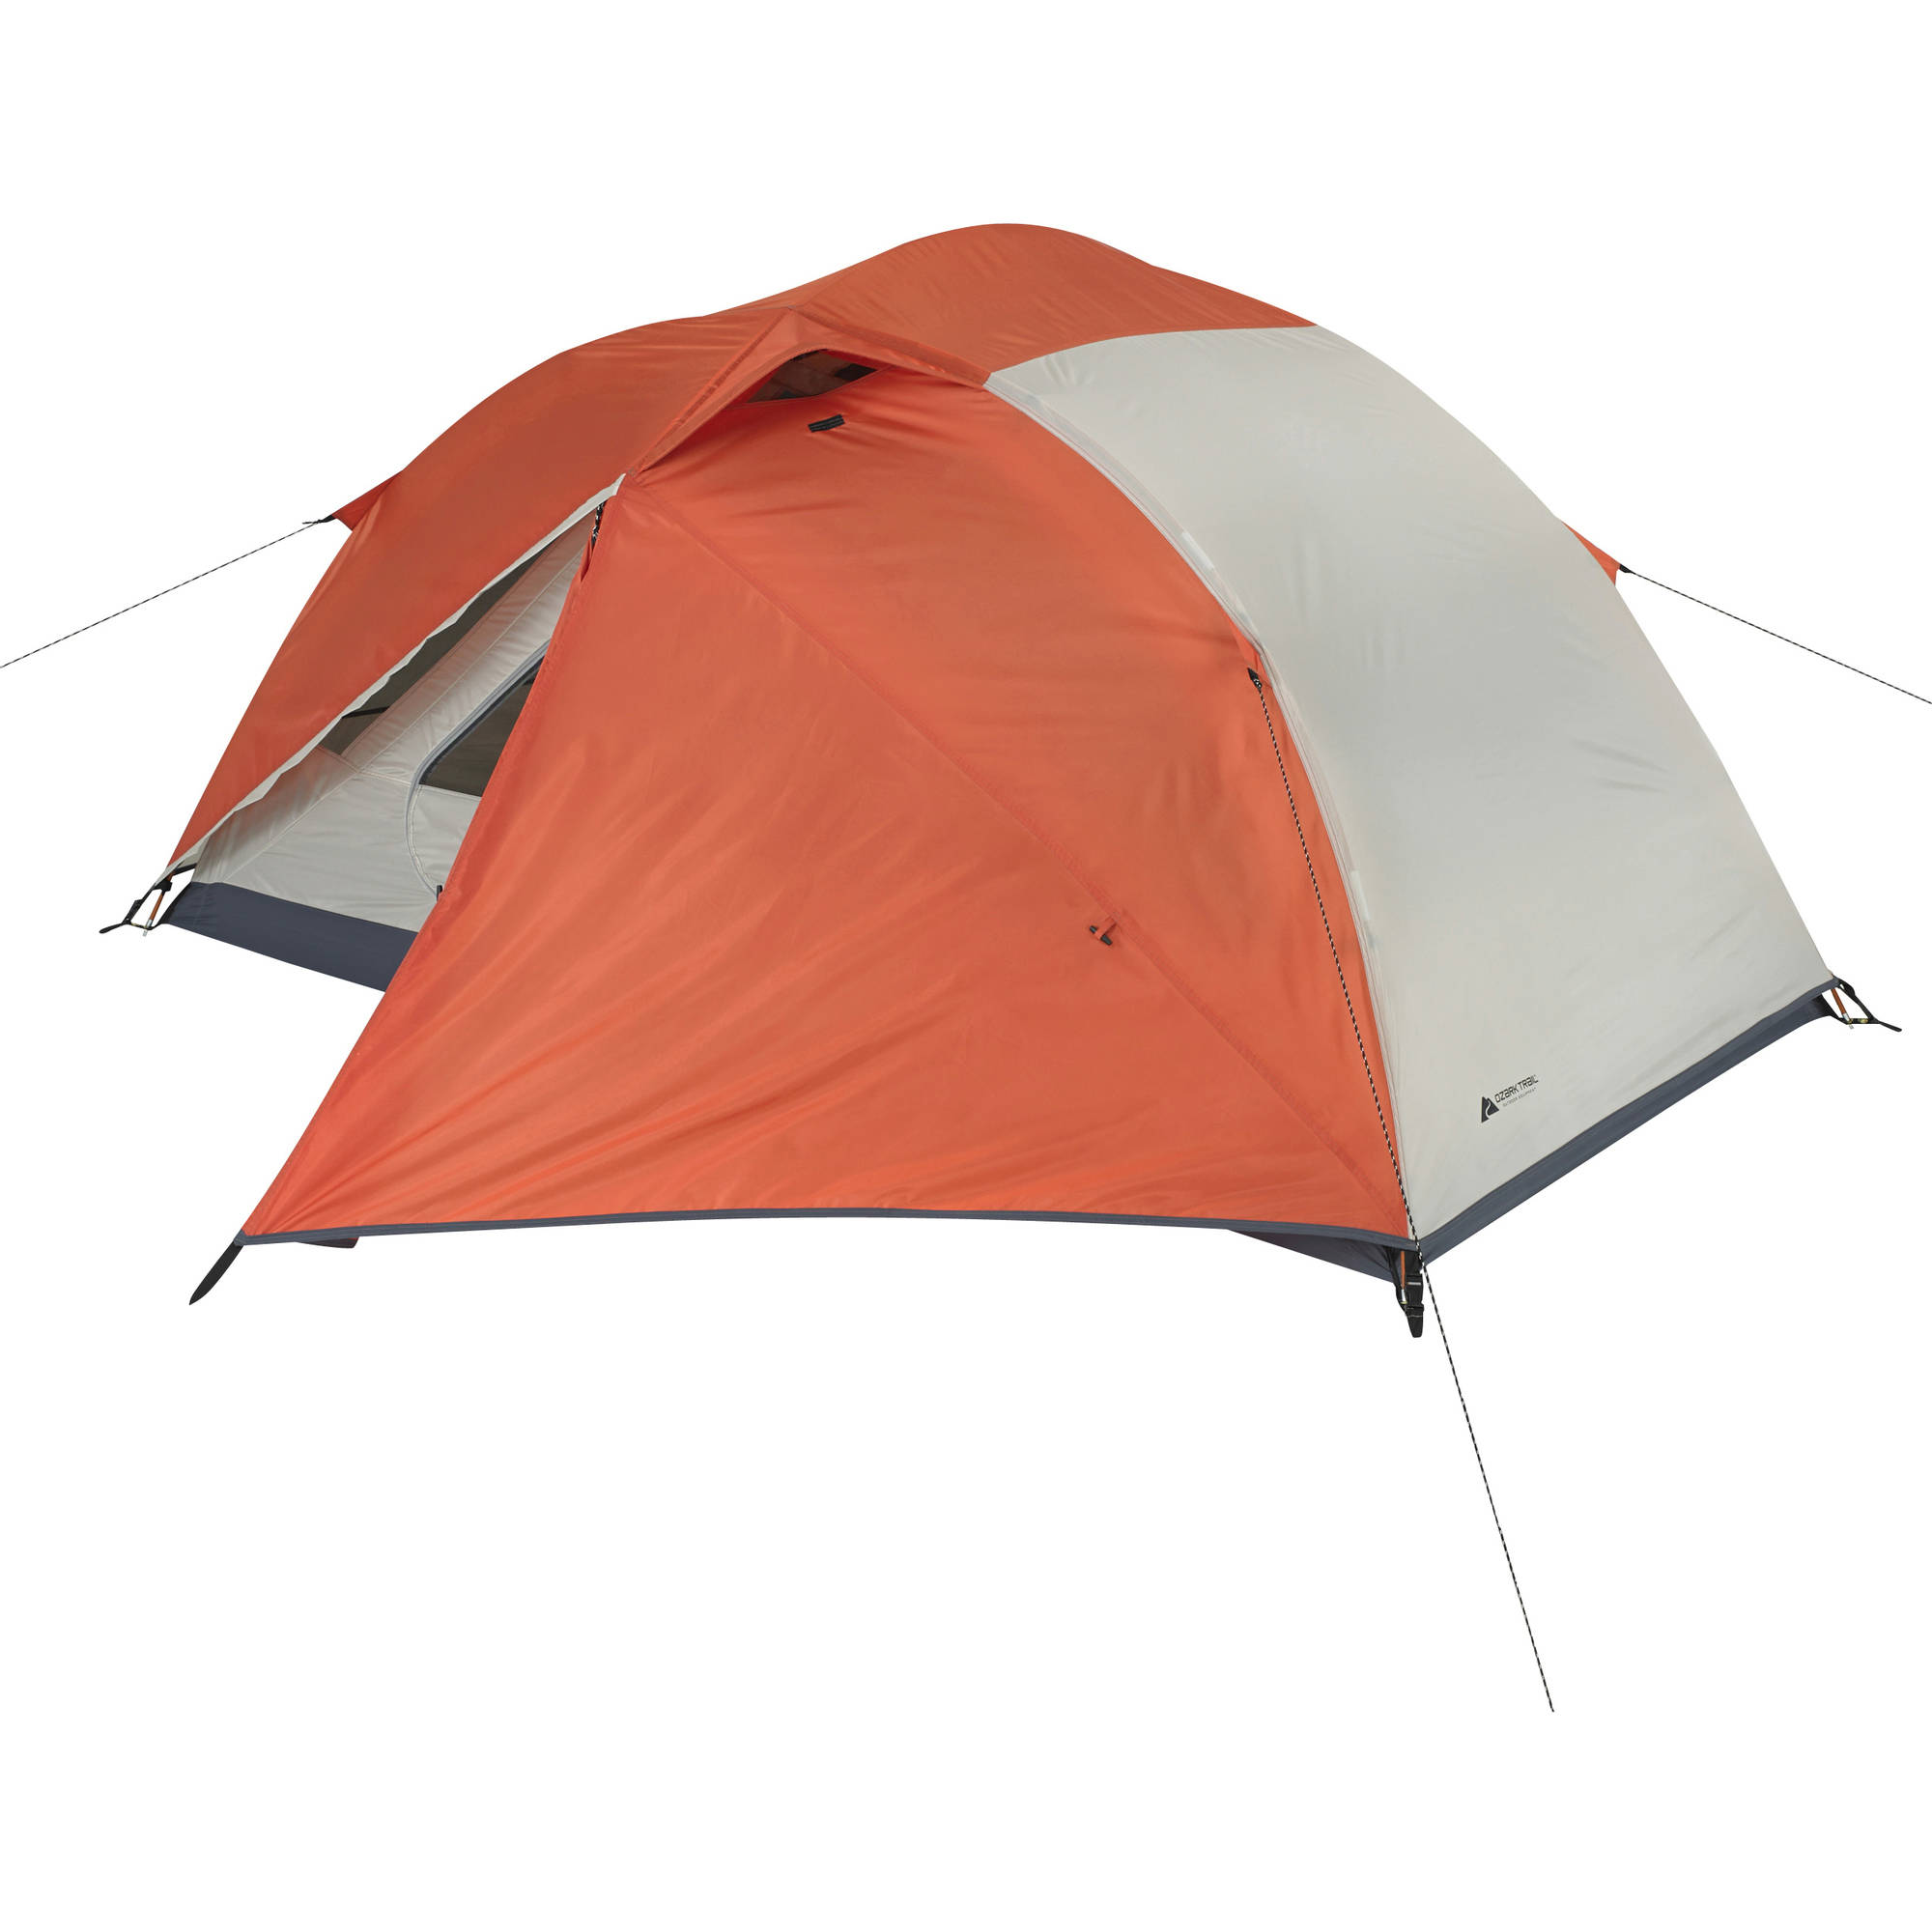 Ozark Trail 2-Person 4-Season Backpacking Tent  sc 1 st  Walmart : 4season tent - memphite.com